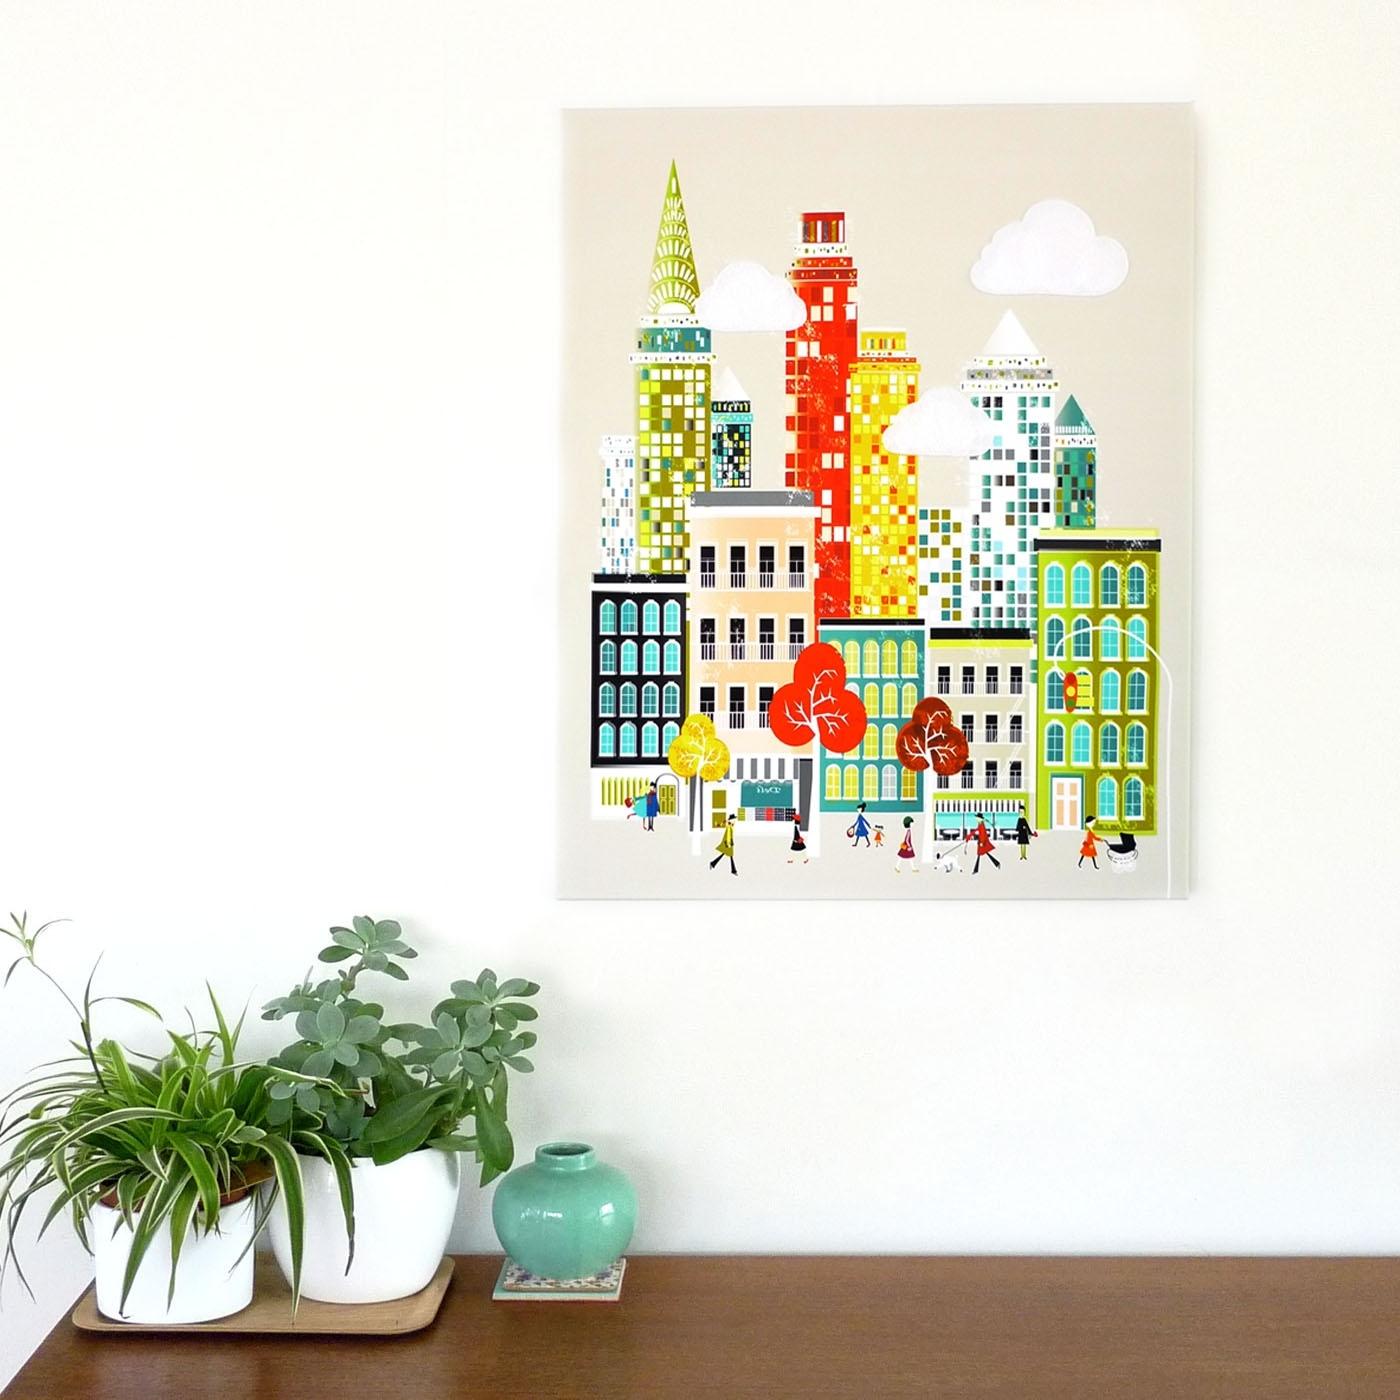 New York Wall Art, Manhattan Skyline, Framed Canvas Wall Art In Trendy Cityscape Canvas Wall Art (View 12 of 15)